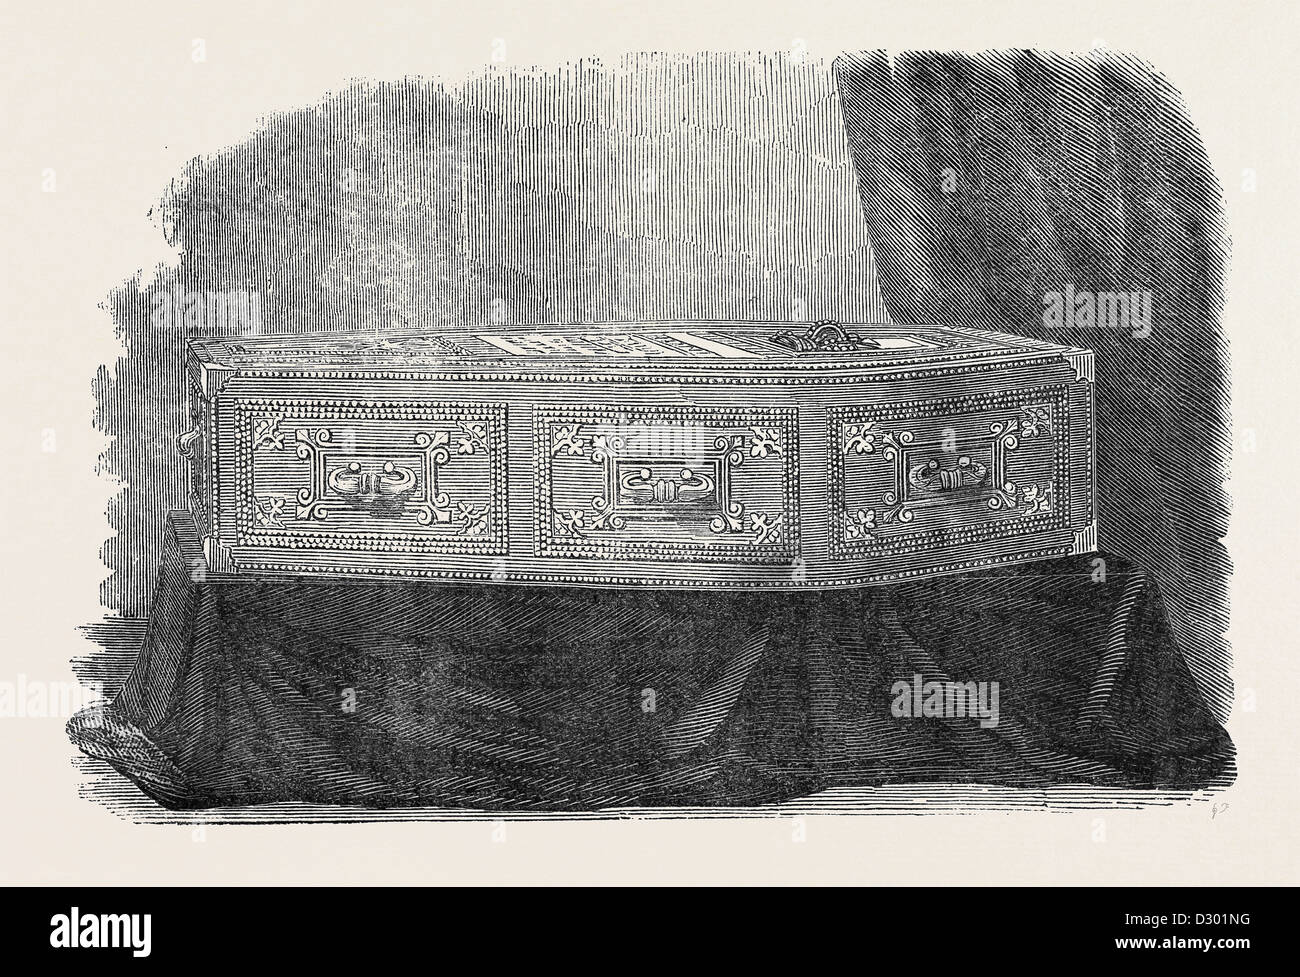 COFFIN OF HIS LATE ROYAL HIGHNESS THE PRINCE CONSORT PRINCE ALBERT - Stock Image